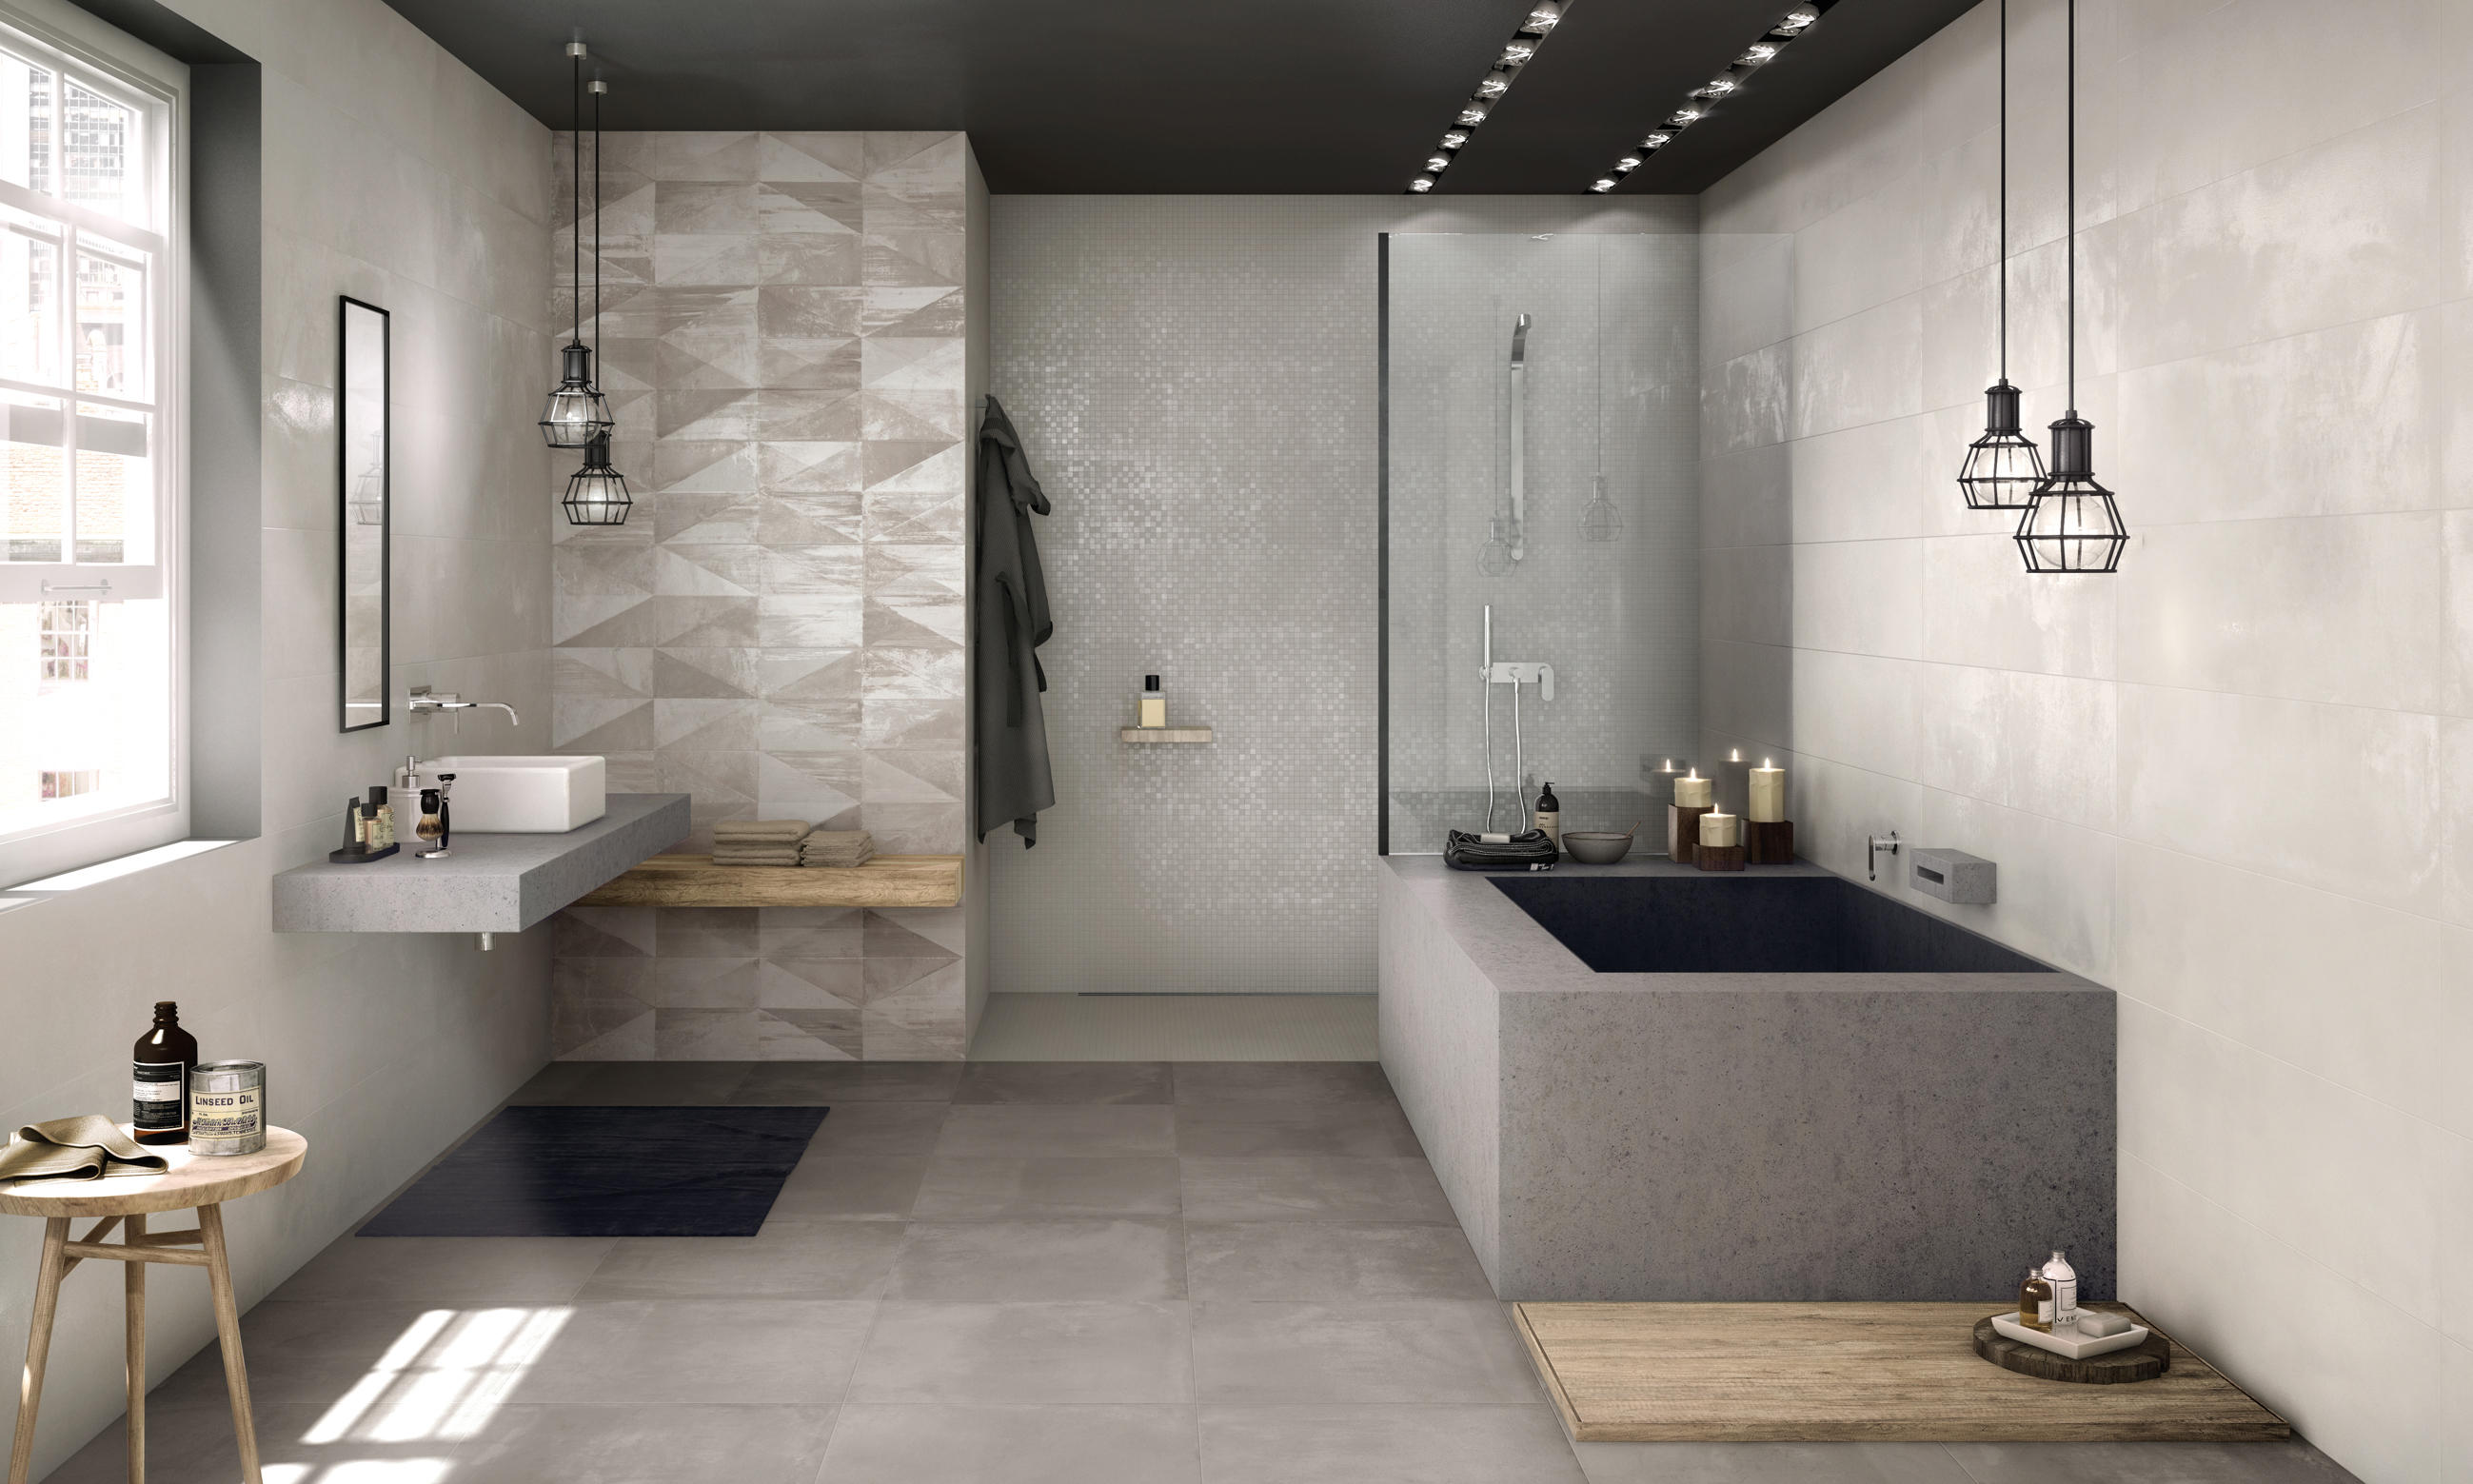 Crea ash ceramic tiles from ariana ceramica architonic - Duschwand fugenlos ...